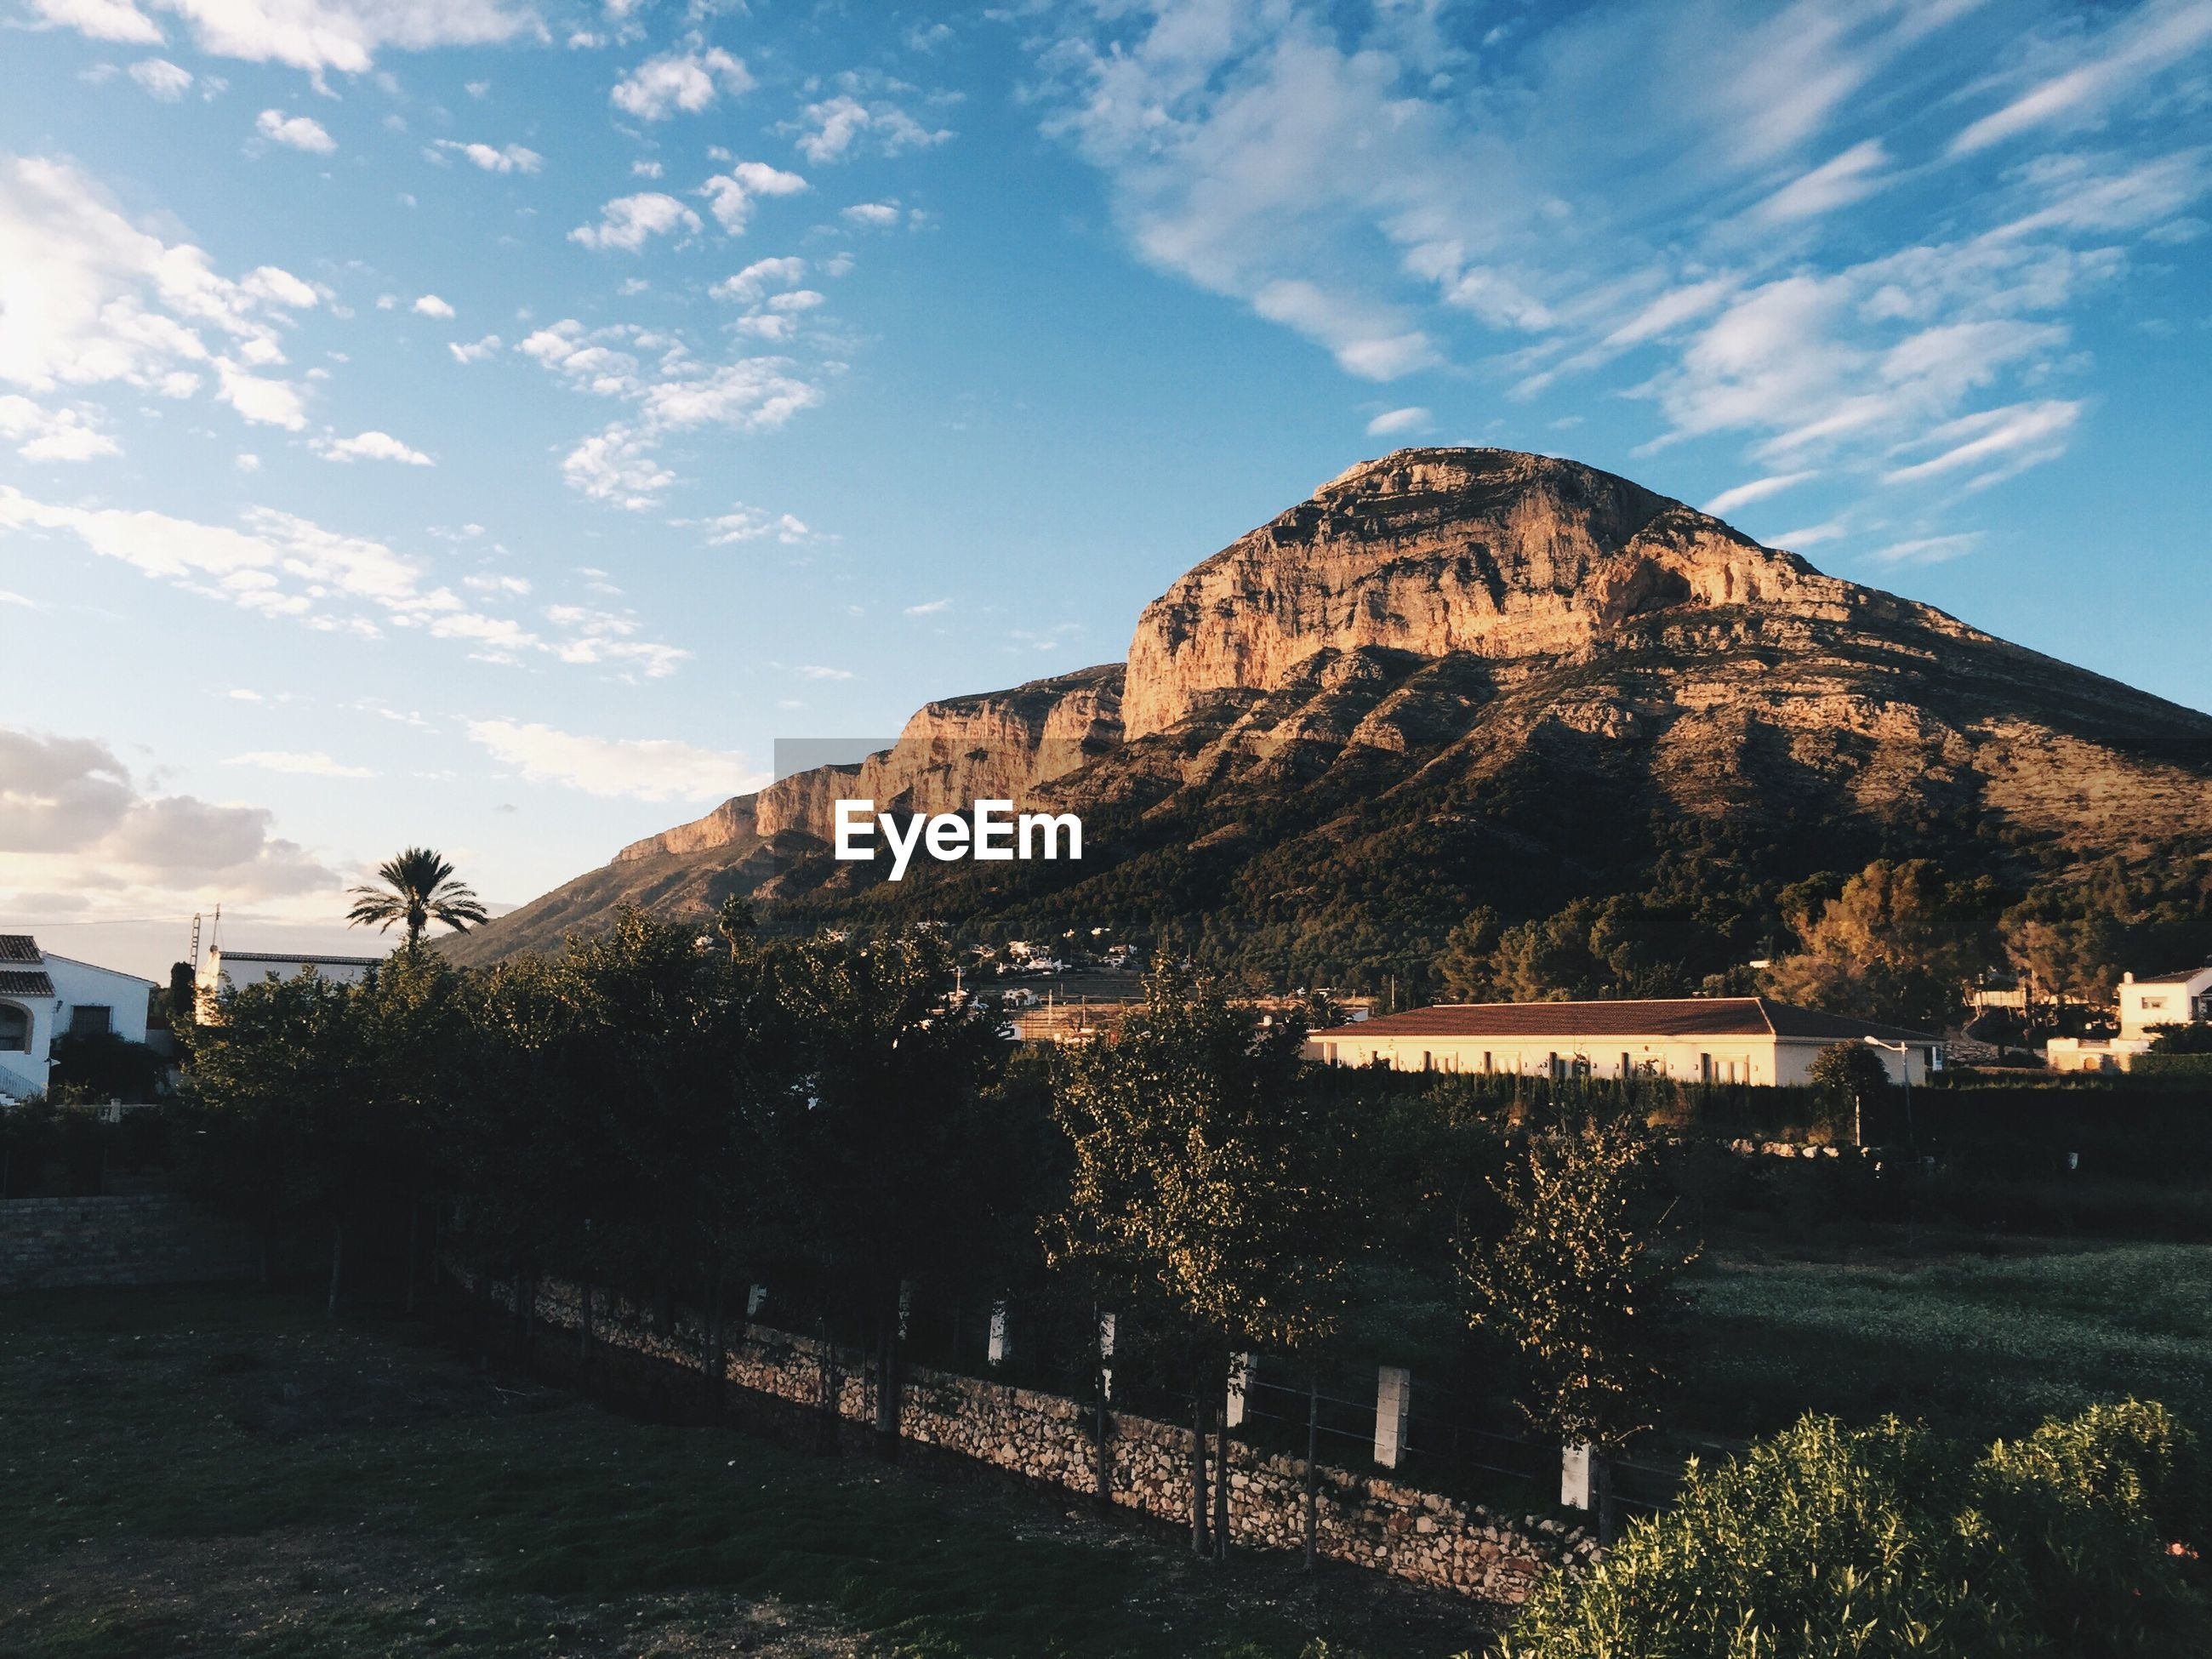 VIEW OF CASTLE ON MOUNTAIN